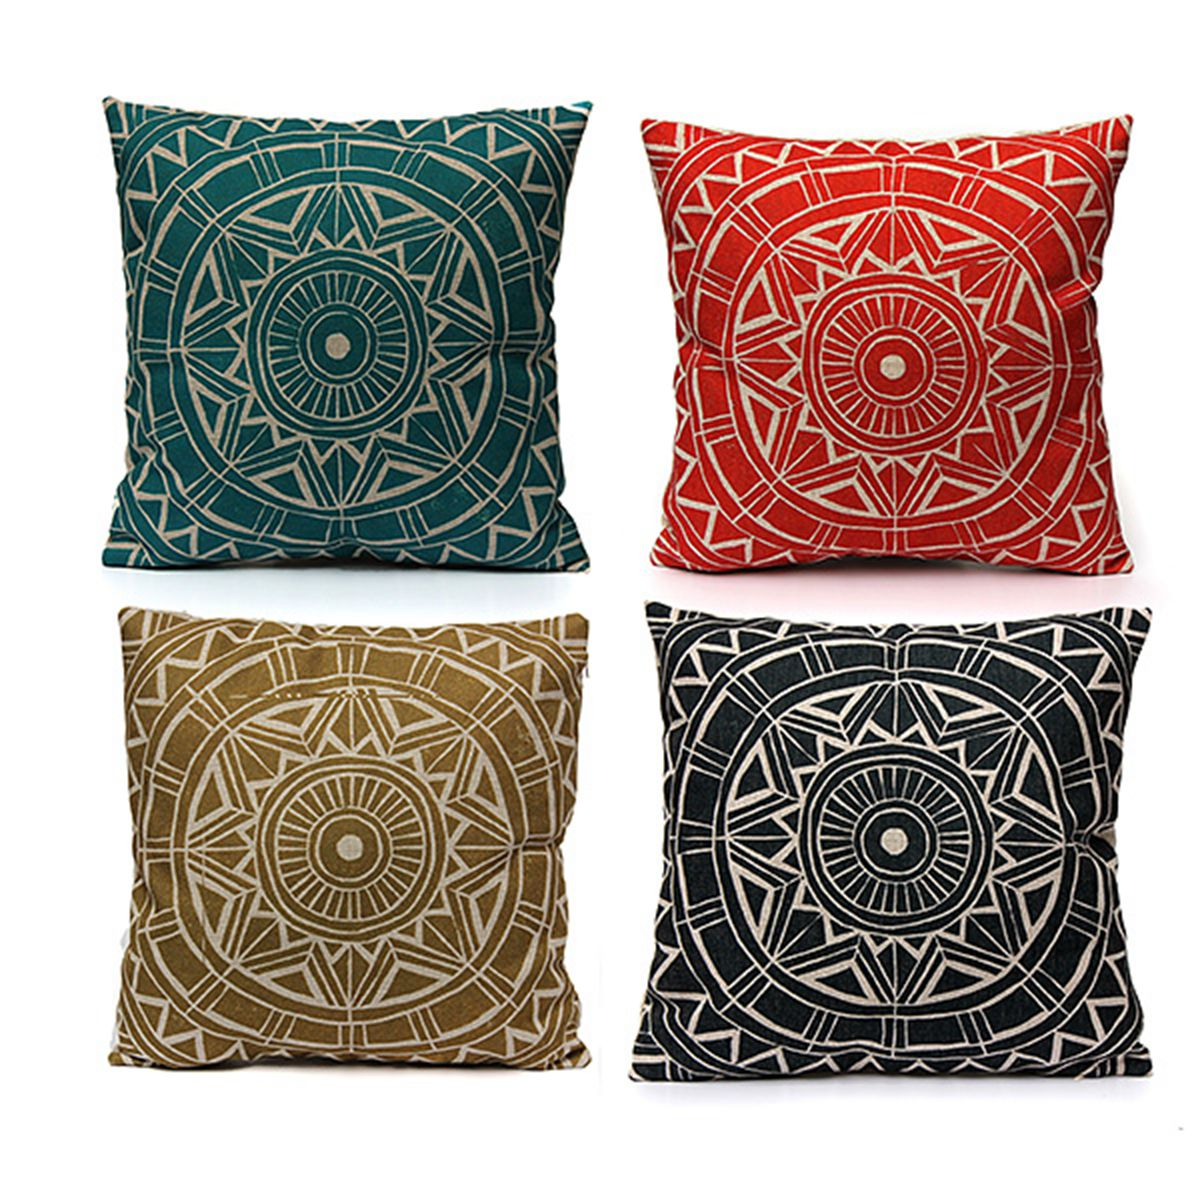 Asewin Linen Printing Pillowcase Cotton Square Shaped Decorative Pillowslip18''x18'' ,Throw Pillow Cover Case for Sofa in Patio Garden Home Lumbar Cushion Cover,Black color